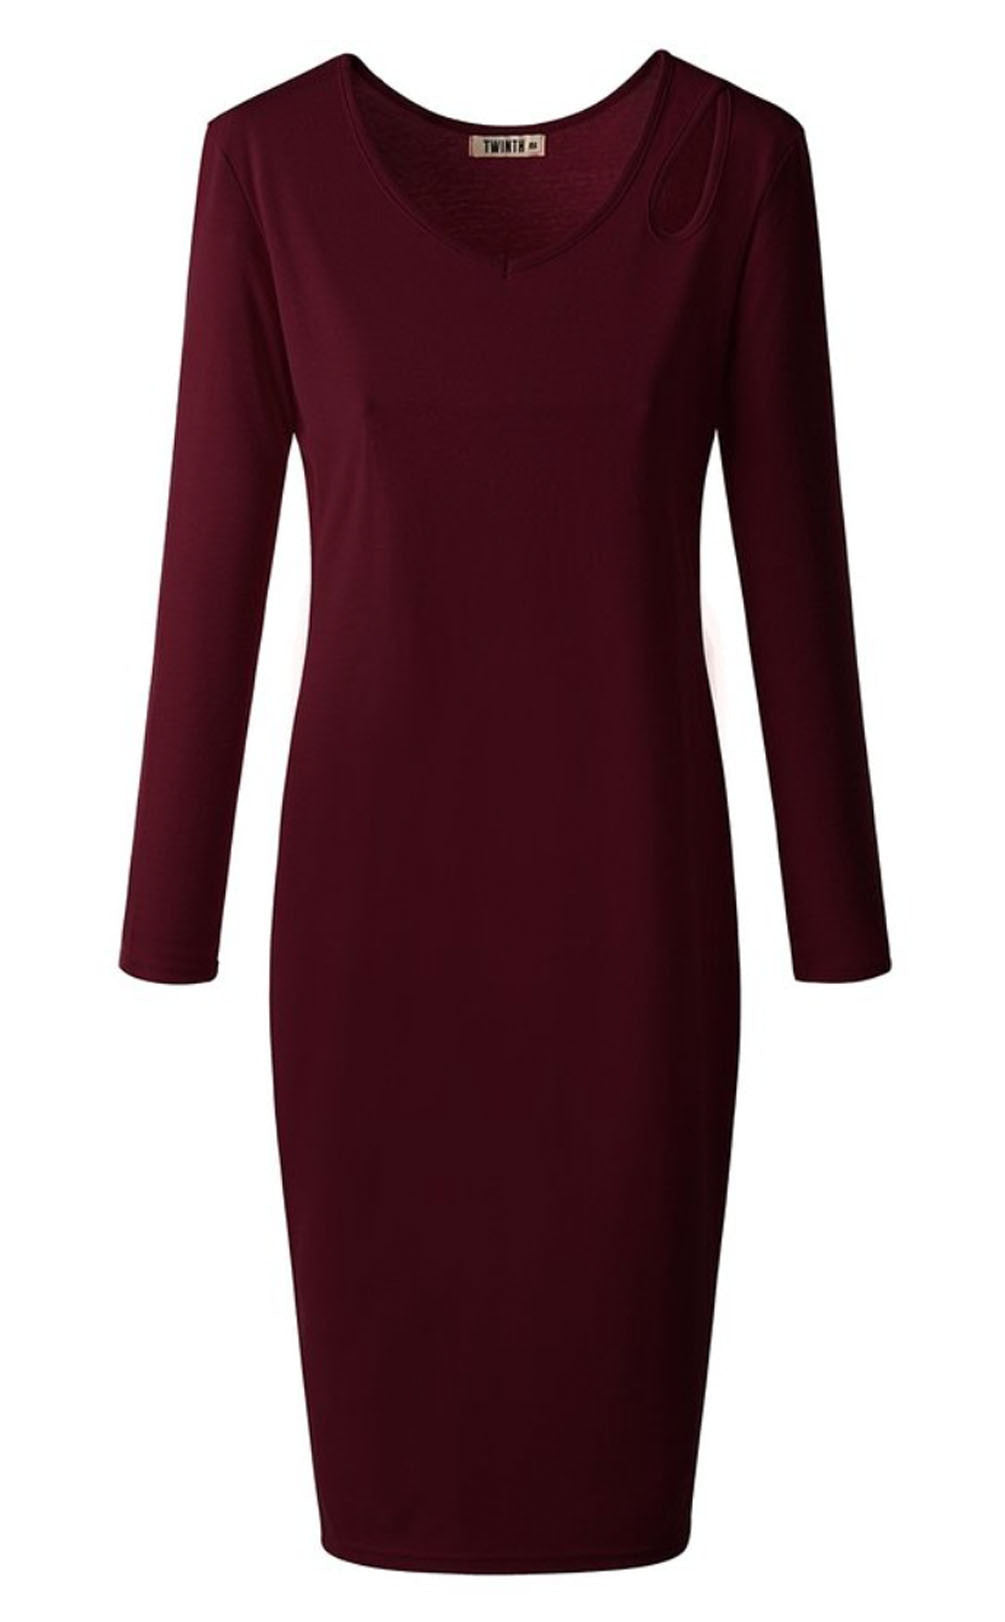 The Cut-Out Courtney Dress in Burgundy